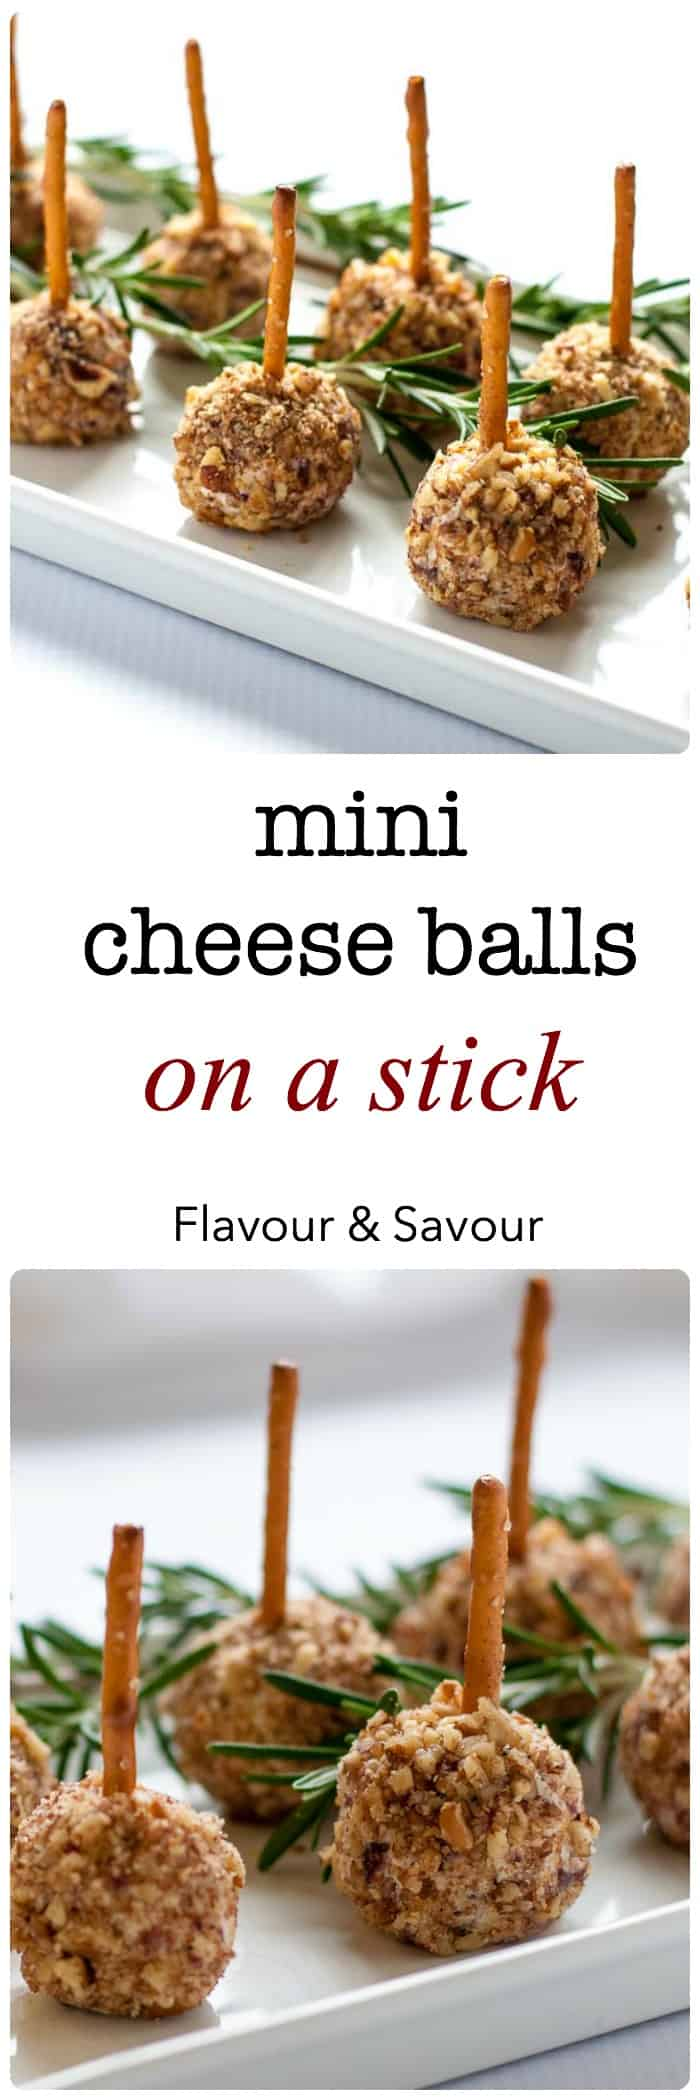 Mini Cheese Balls on a Stick--fun finger food! A tiny bite on a pretzel stick. Easy to make gluten-free, too! VIDEO instructions.